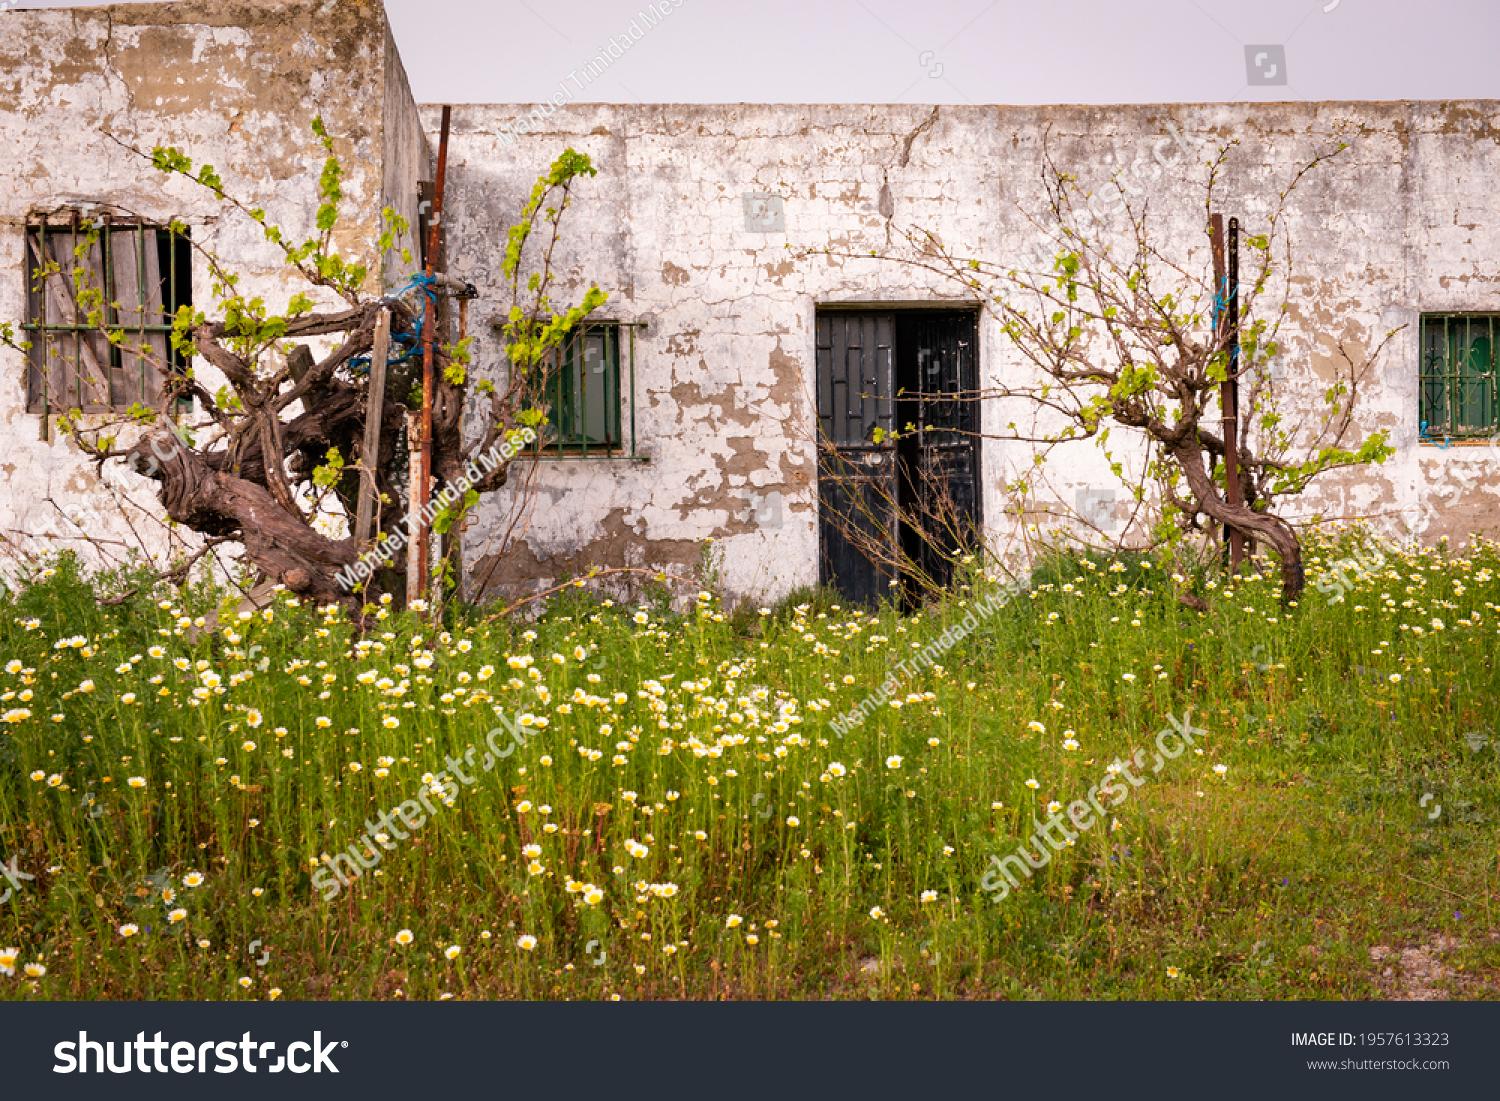 Abandoned country house with open door